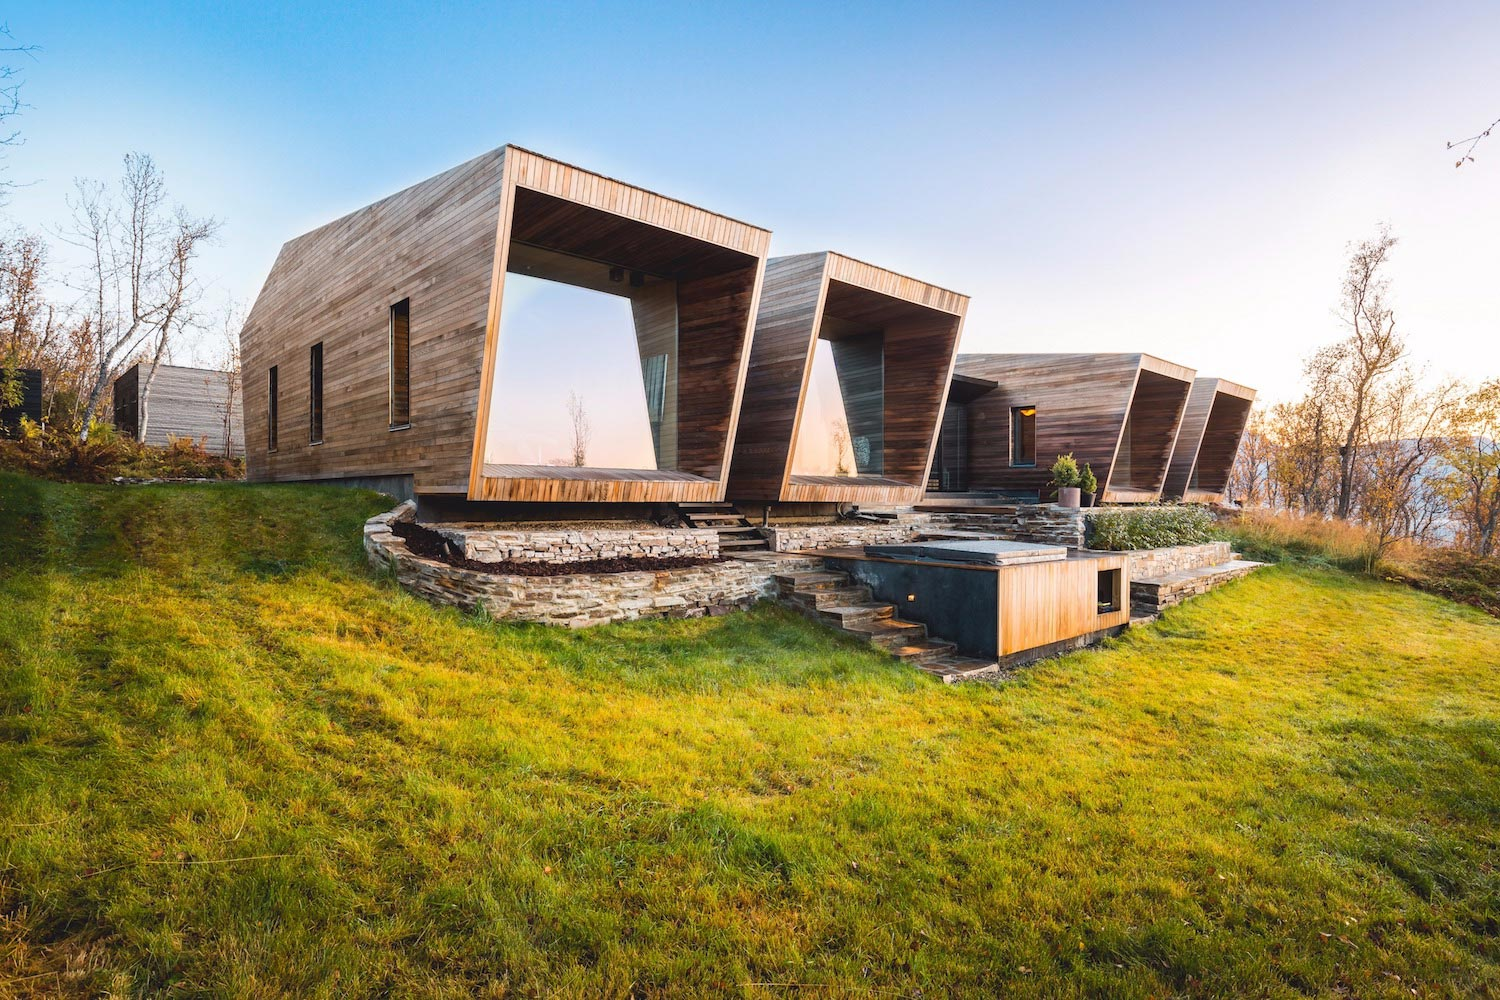 House design rural - Contemporary Malangen Retreat By Snorre Stinessen Could Be You Dream Cabin